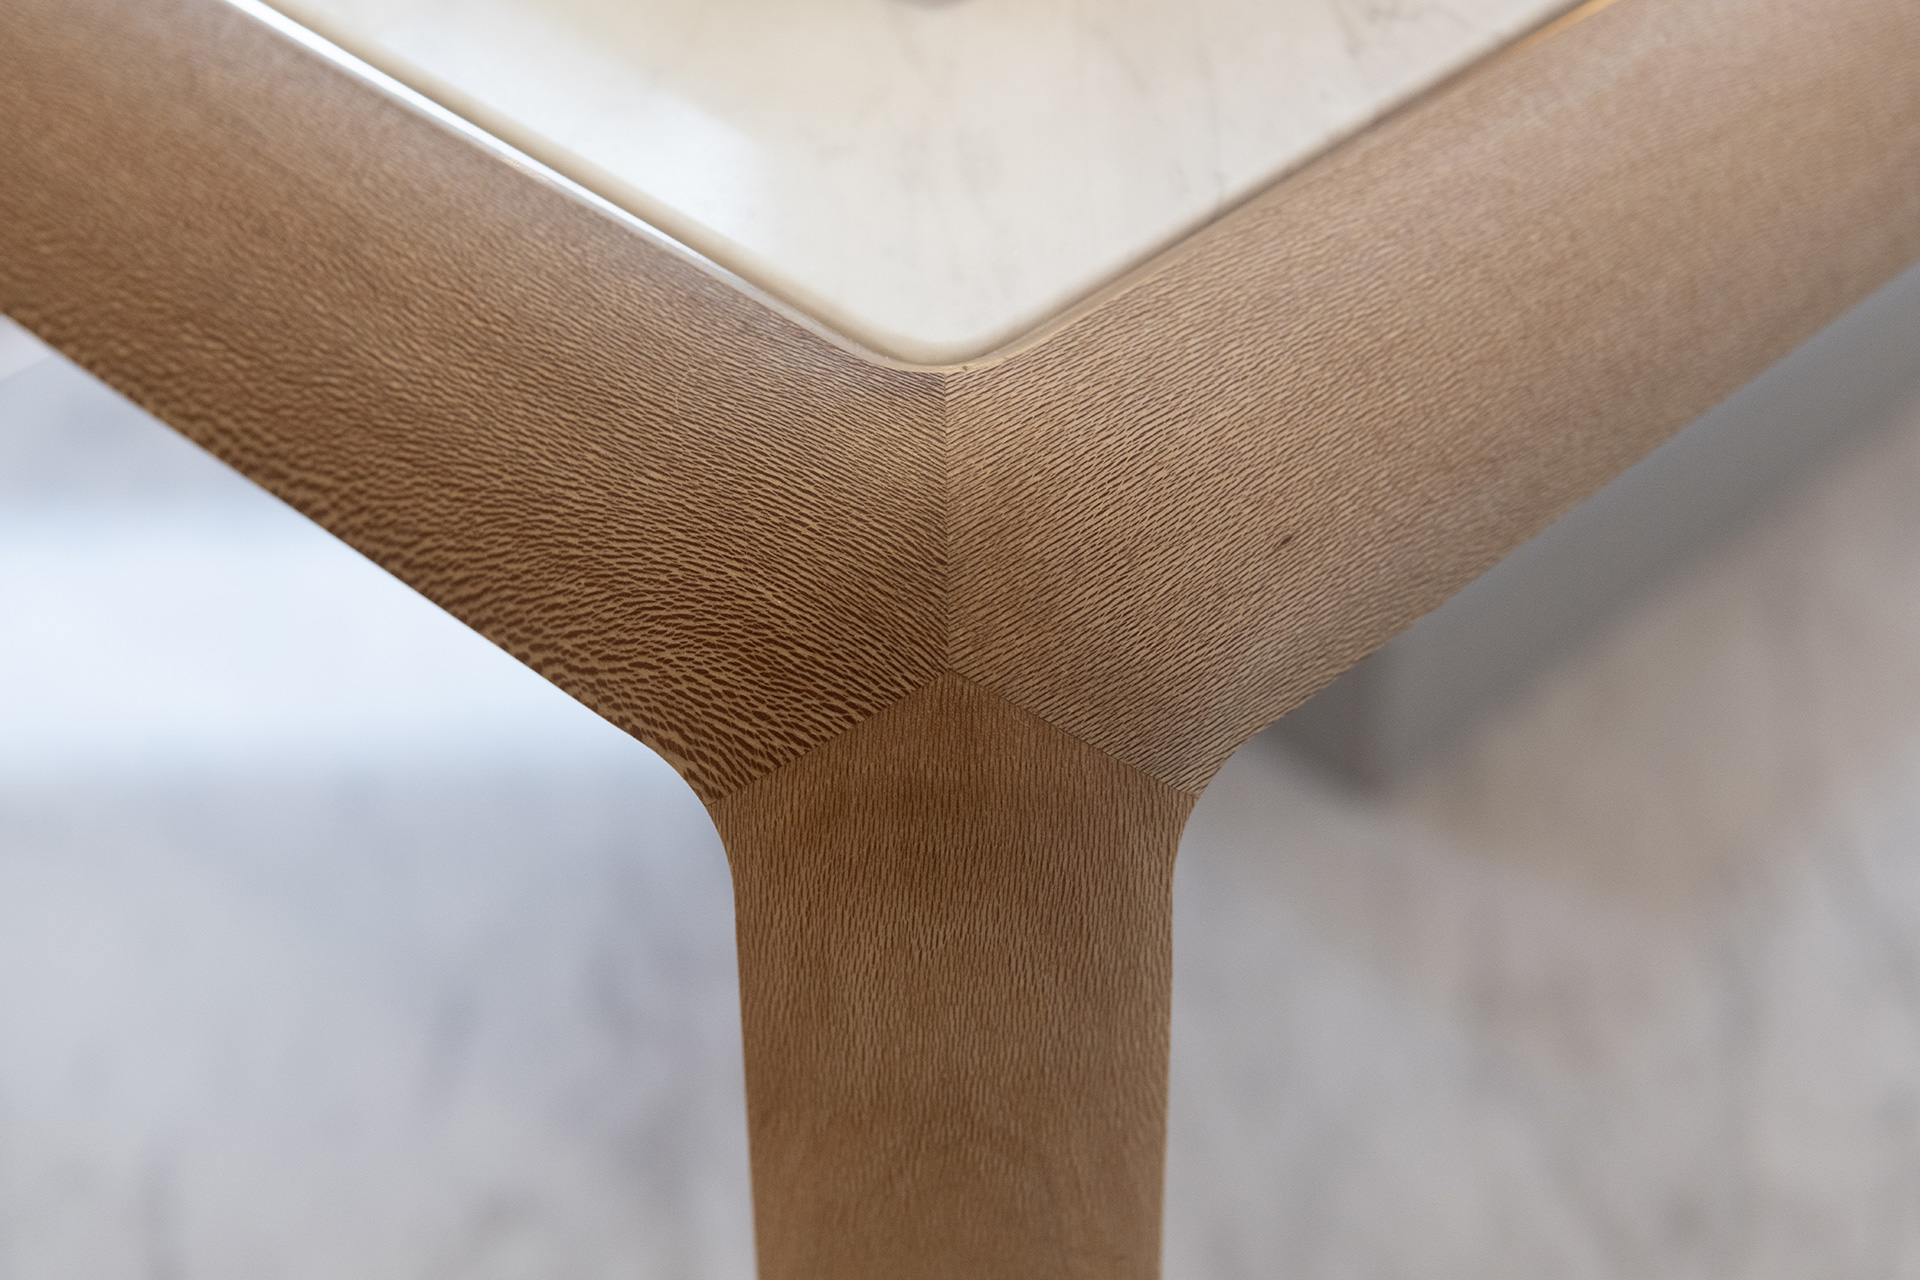 The furniture at Hearst's London store have rounded corners | Gabriela Hearst London Store | Foster + Partners | STIRworld